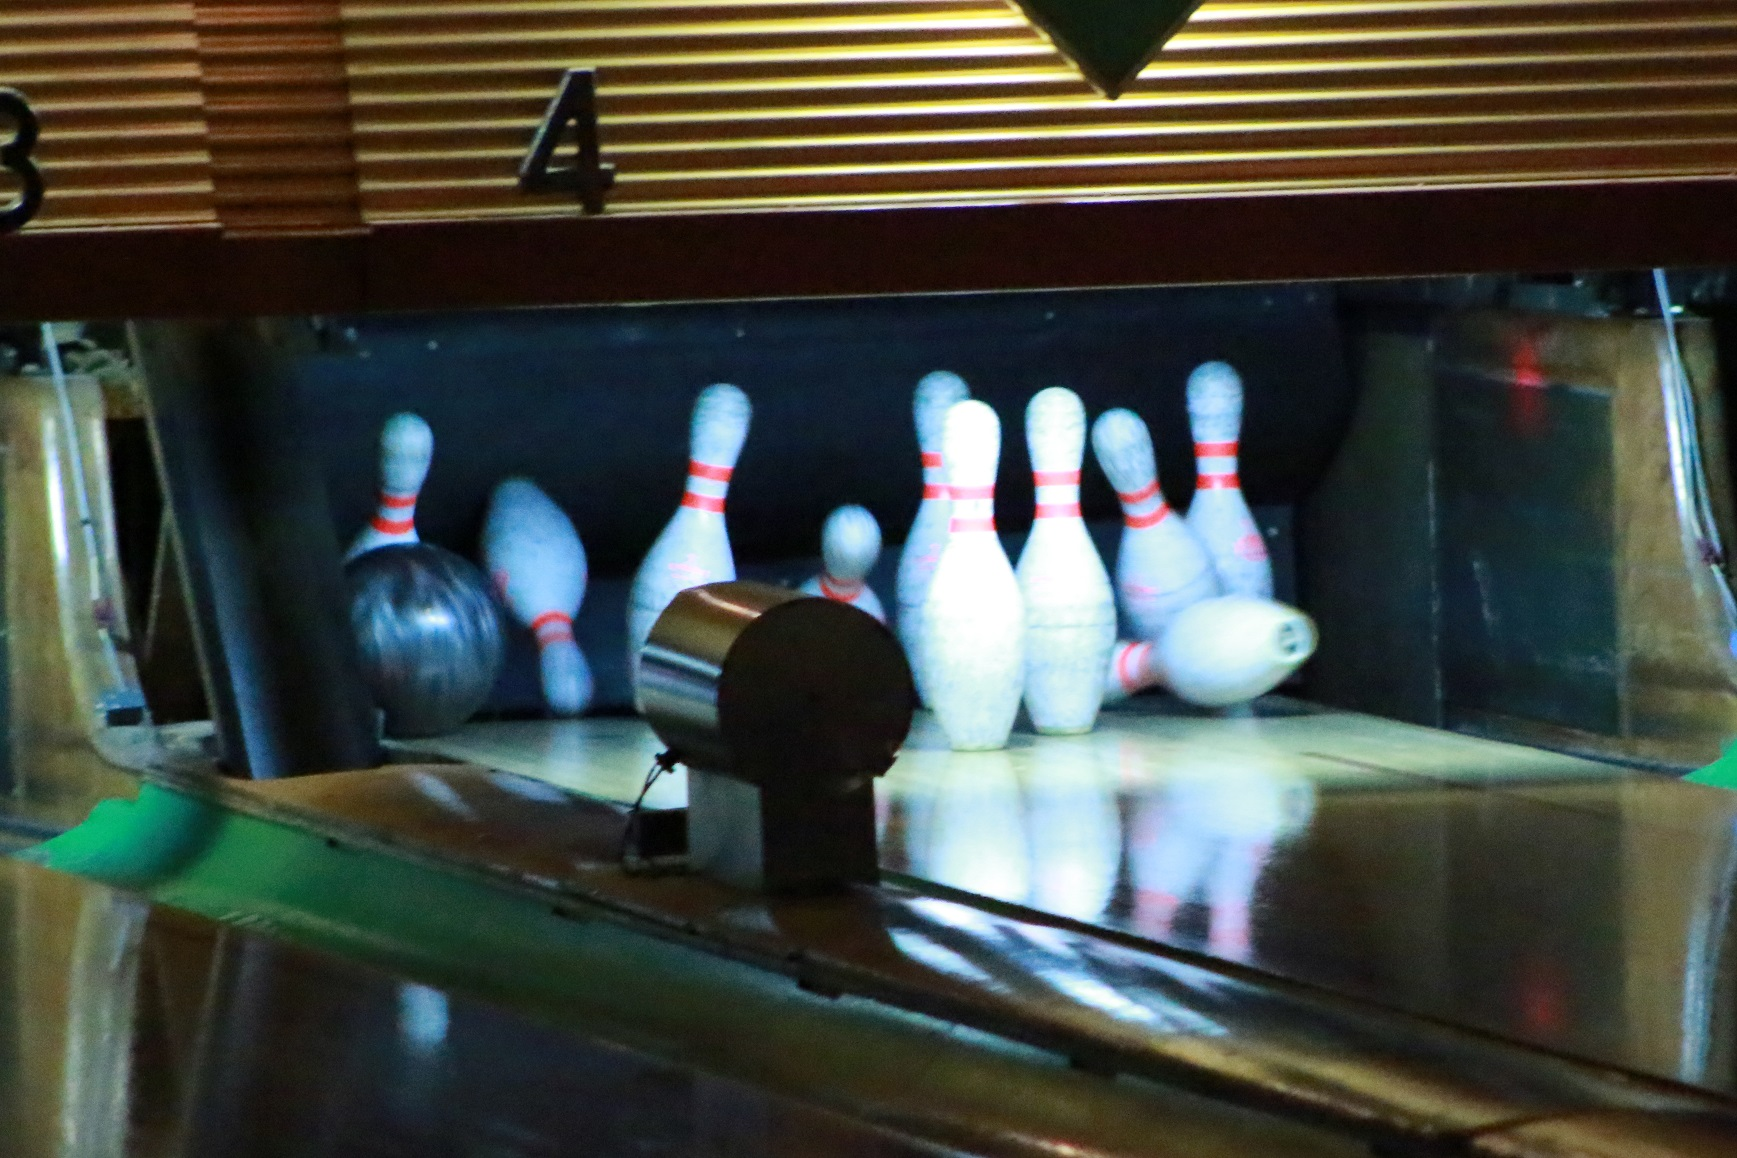 Nude Bowling